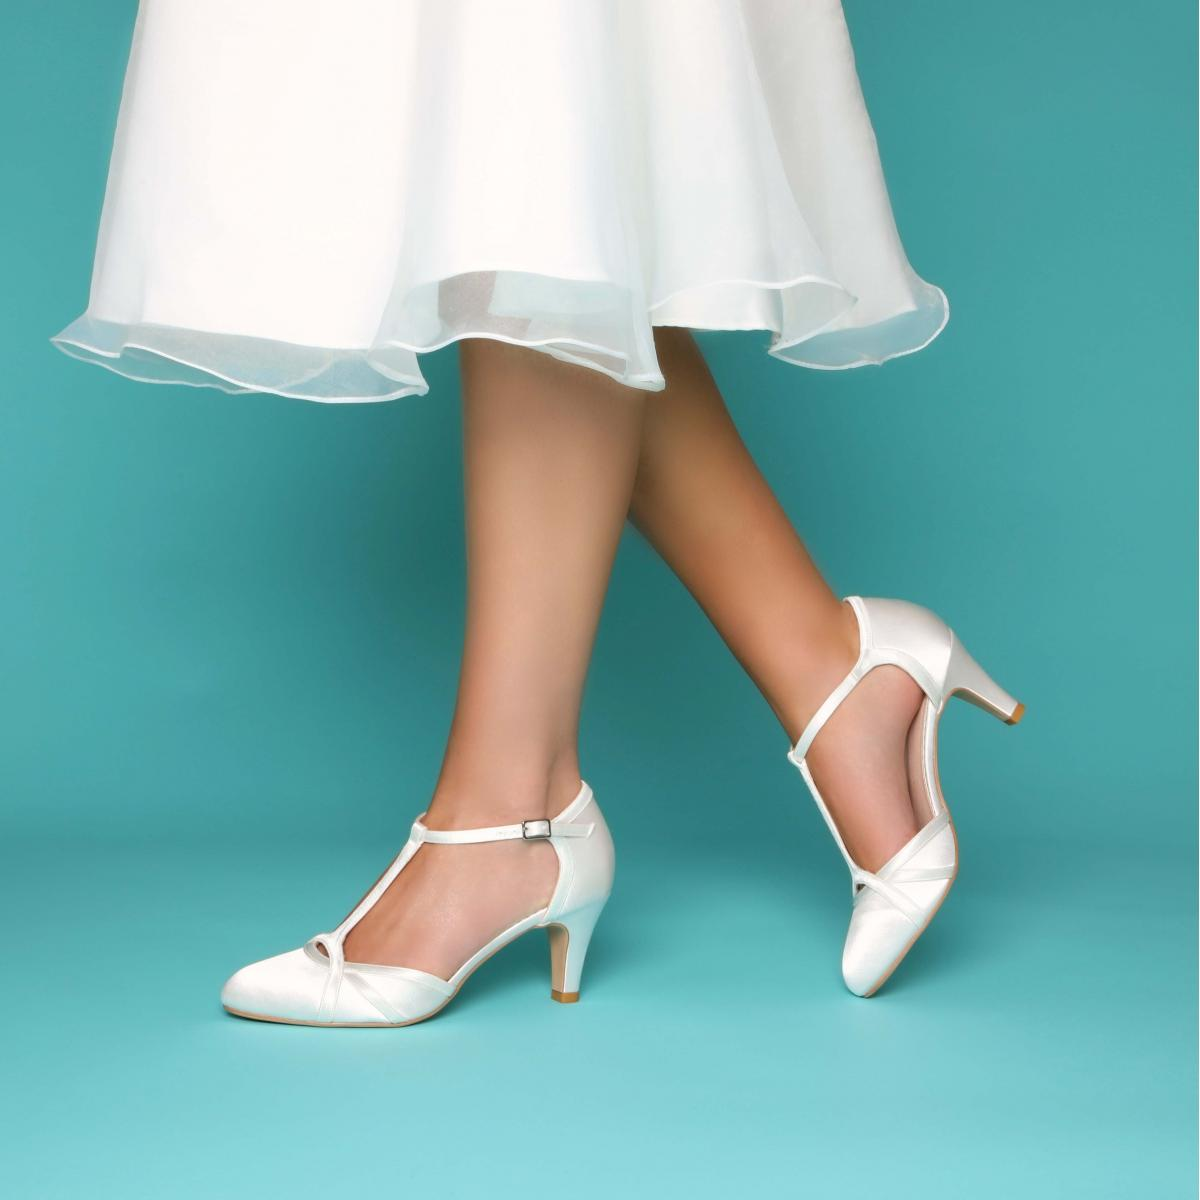 Perfect Bridal Belle Shoe - Ivory Satin 1